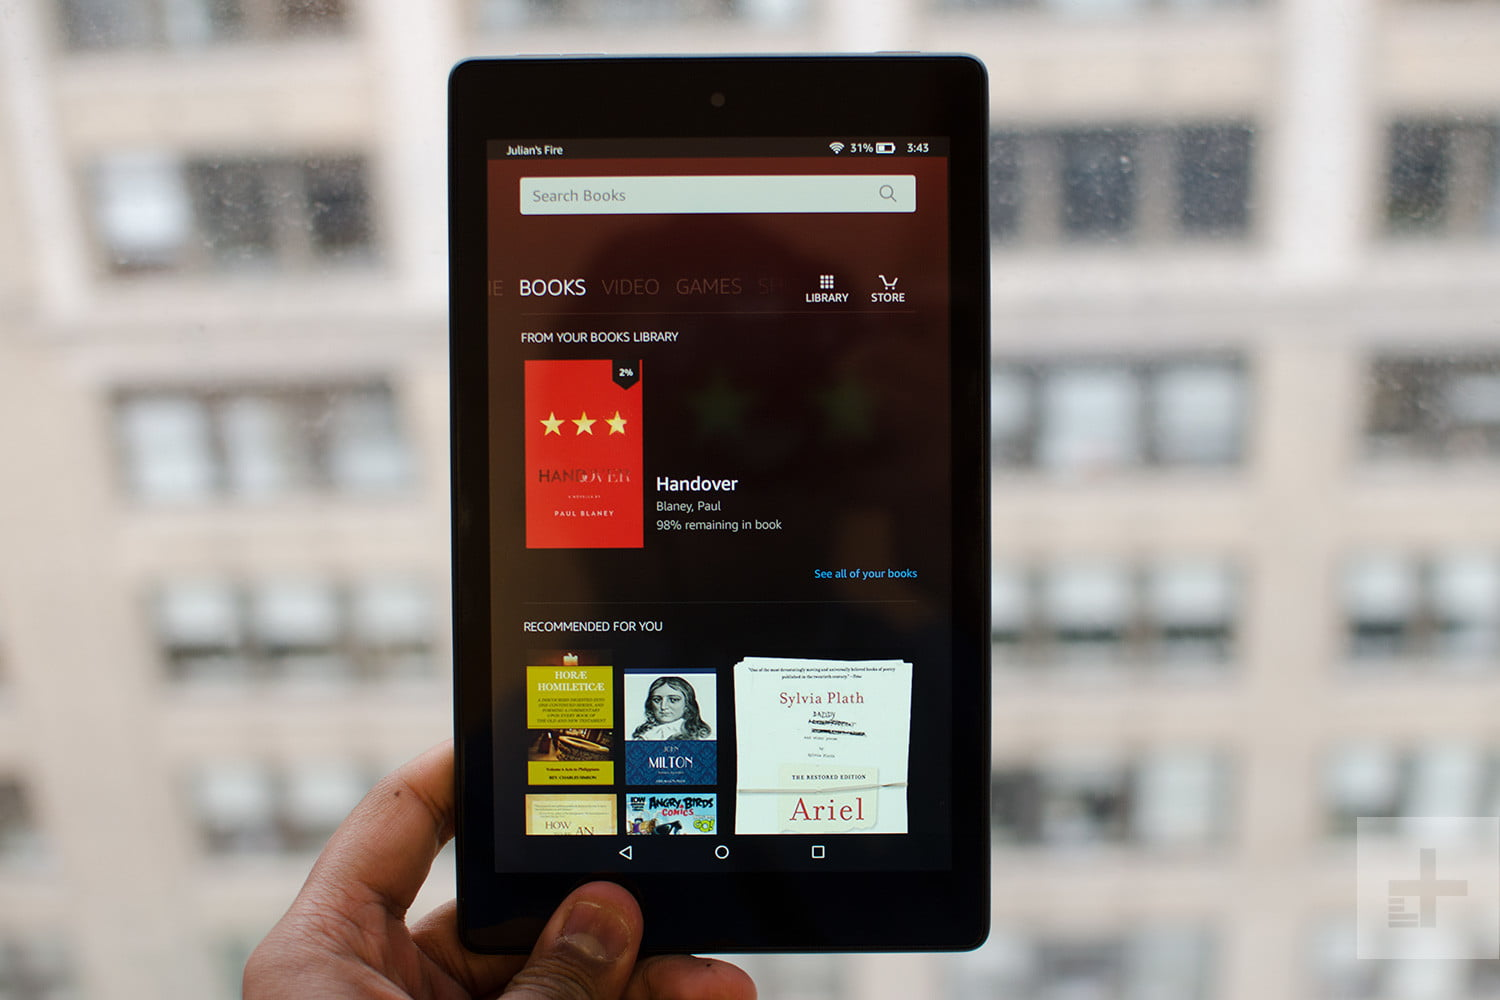 amazon adds hands-free alexa support to fire 7 and fire hd 8 tablets